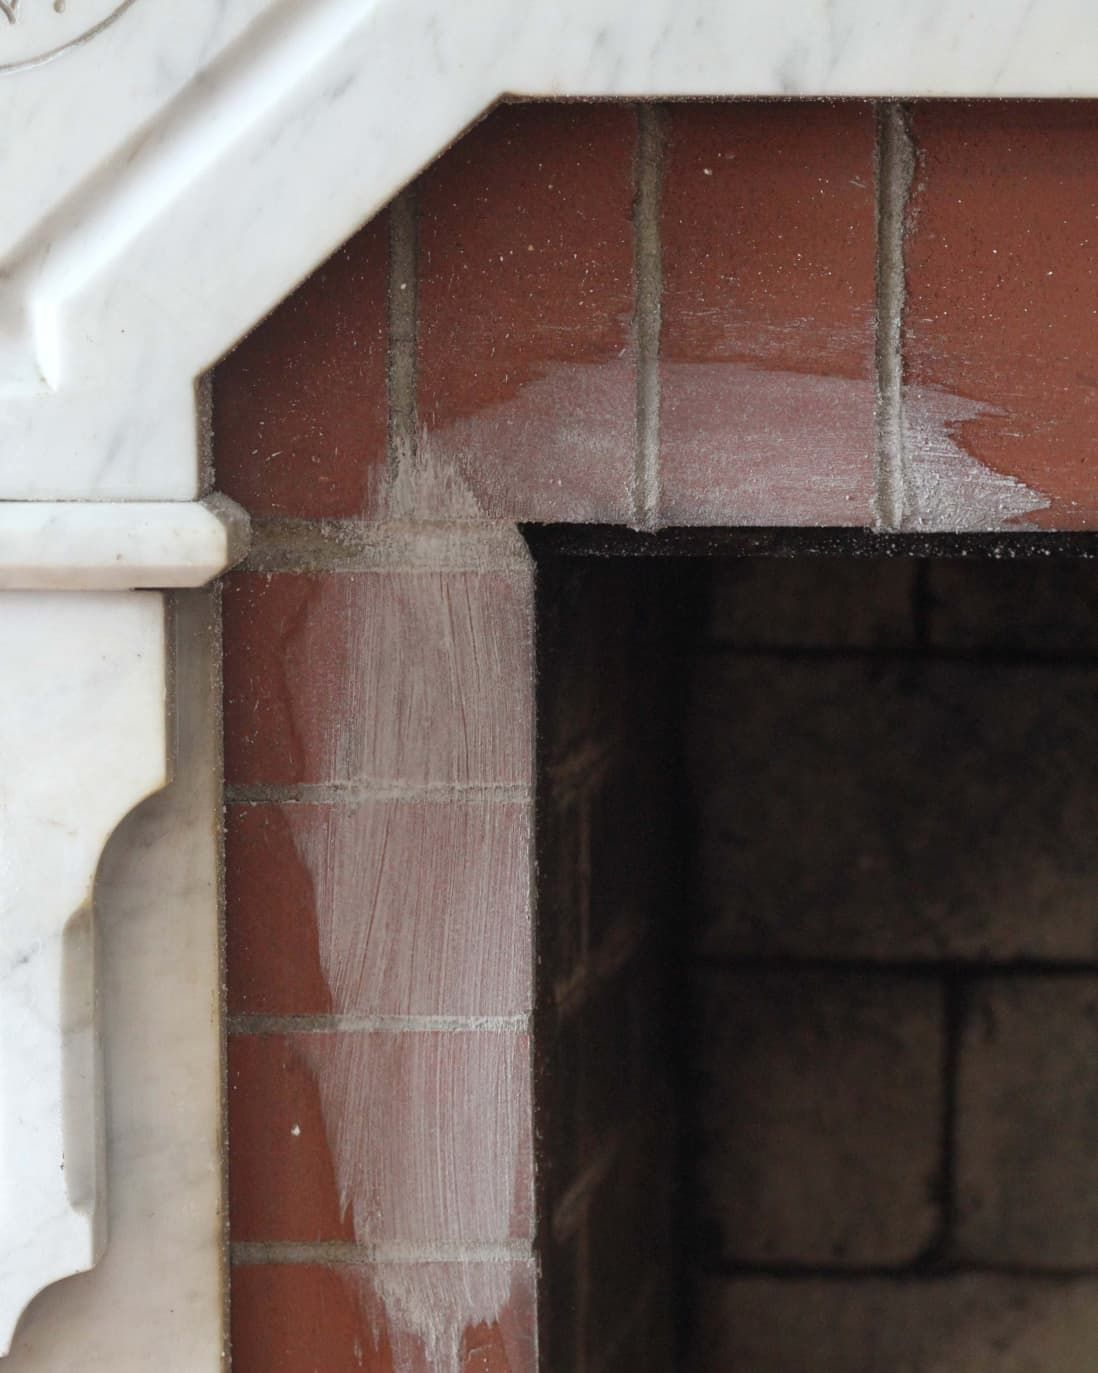 How to clean a brick fireplace with allnatural cleaners